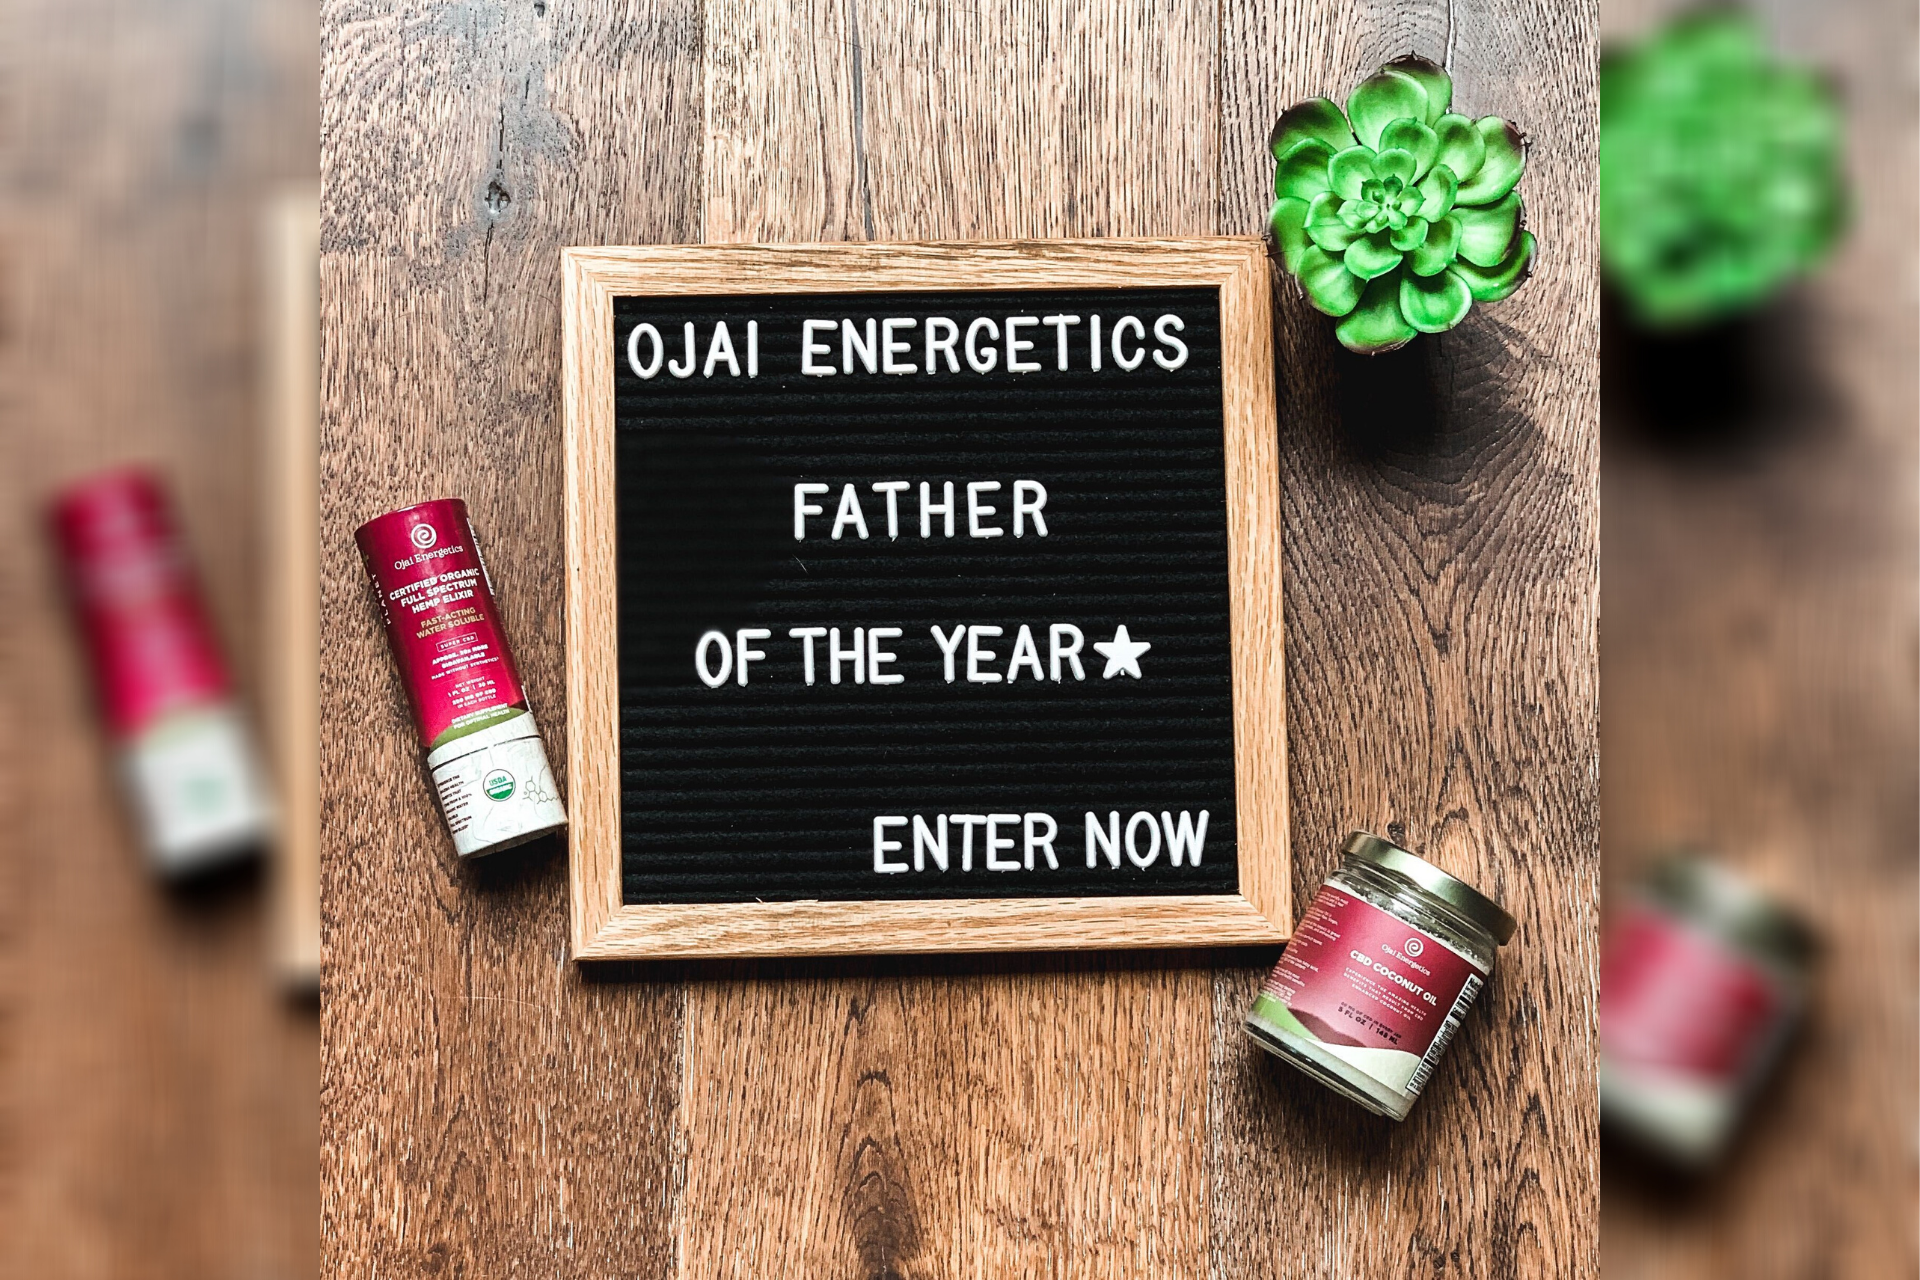 Ojai Energetics 'Father Of The Year Award' Call For Entries